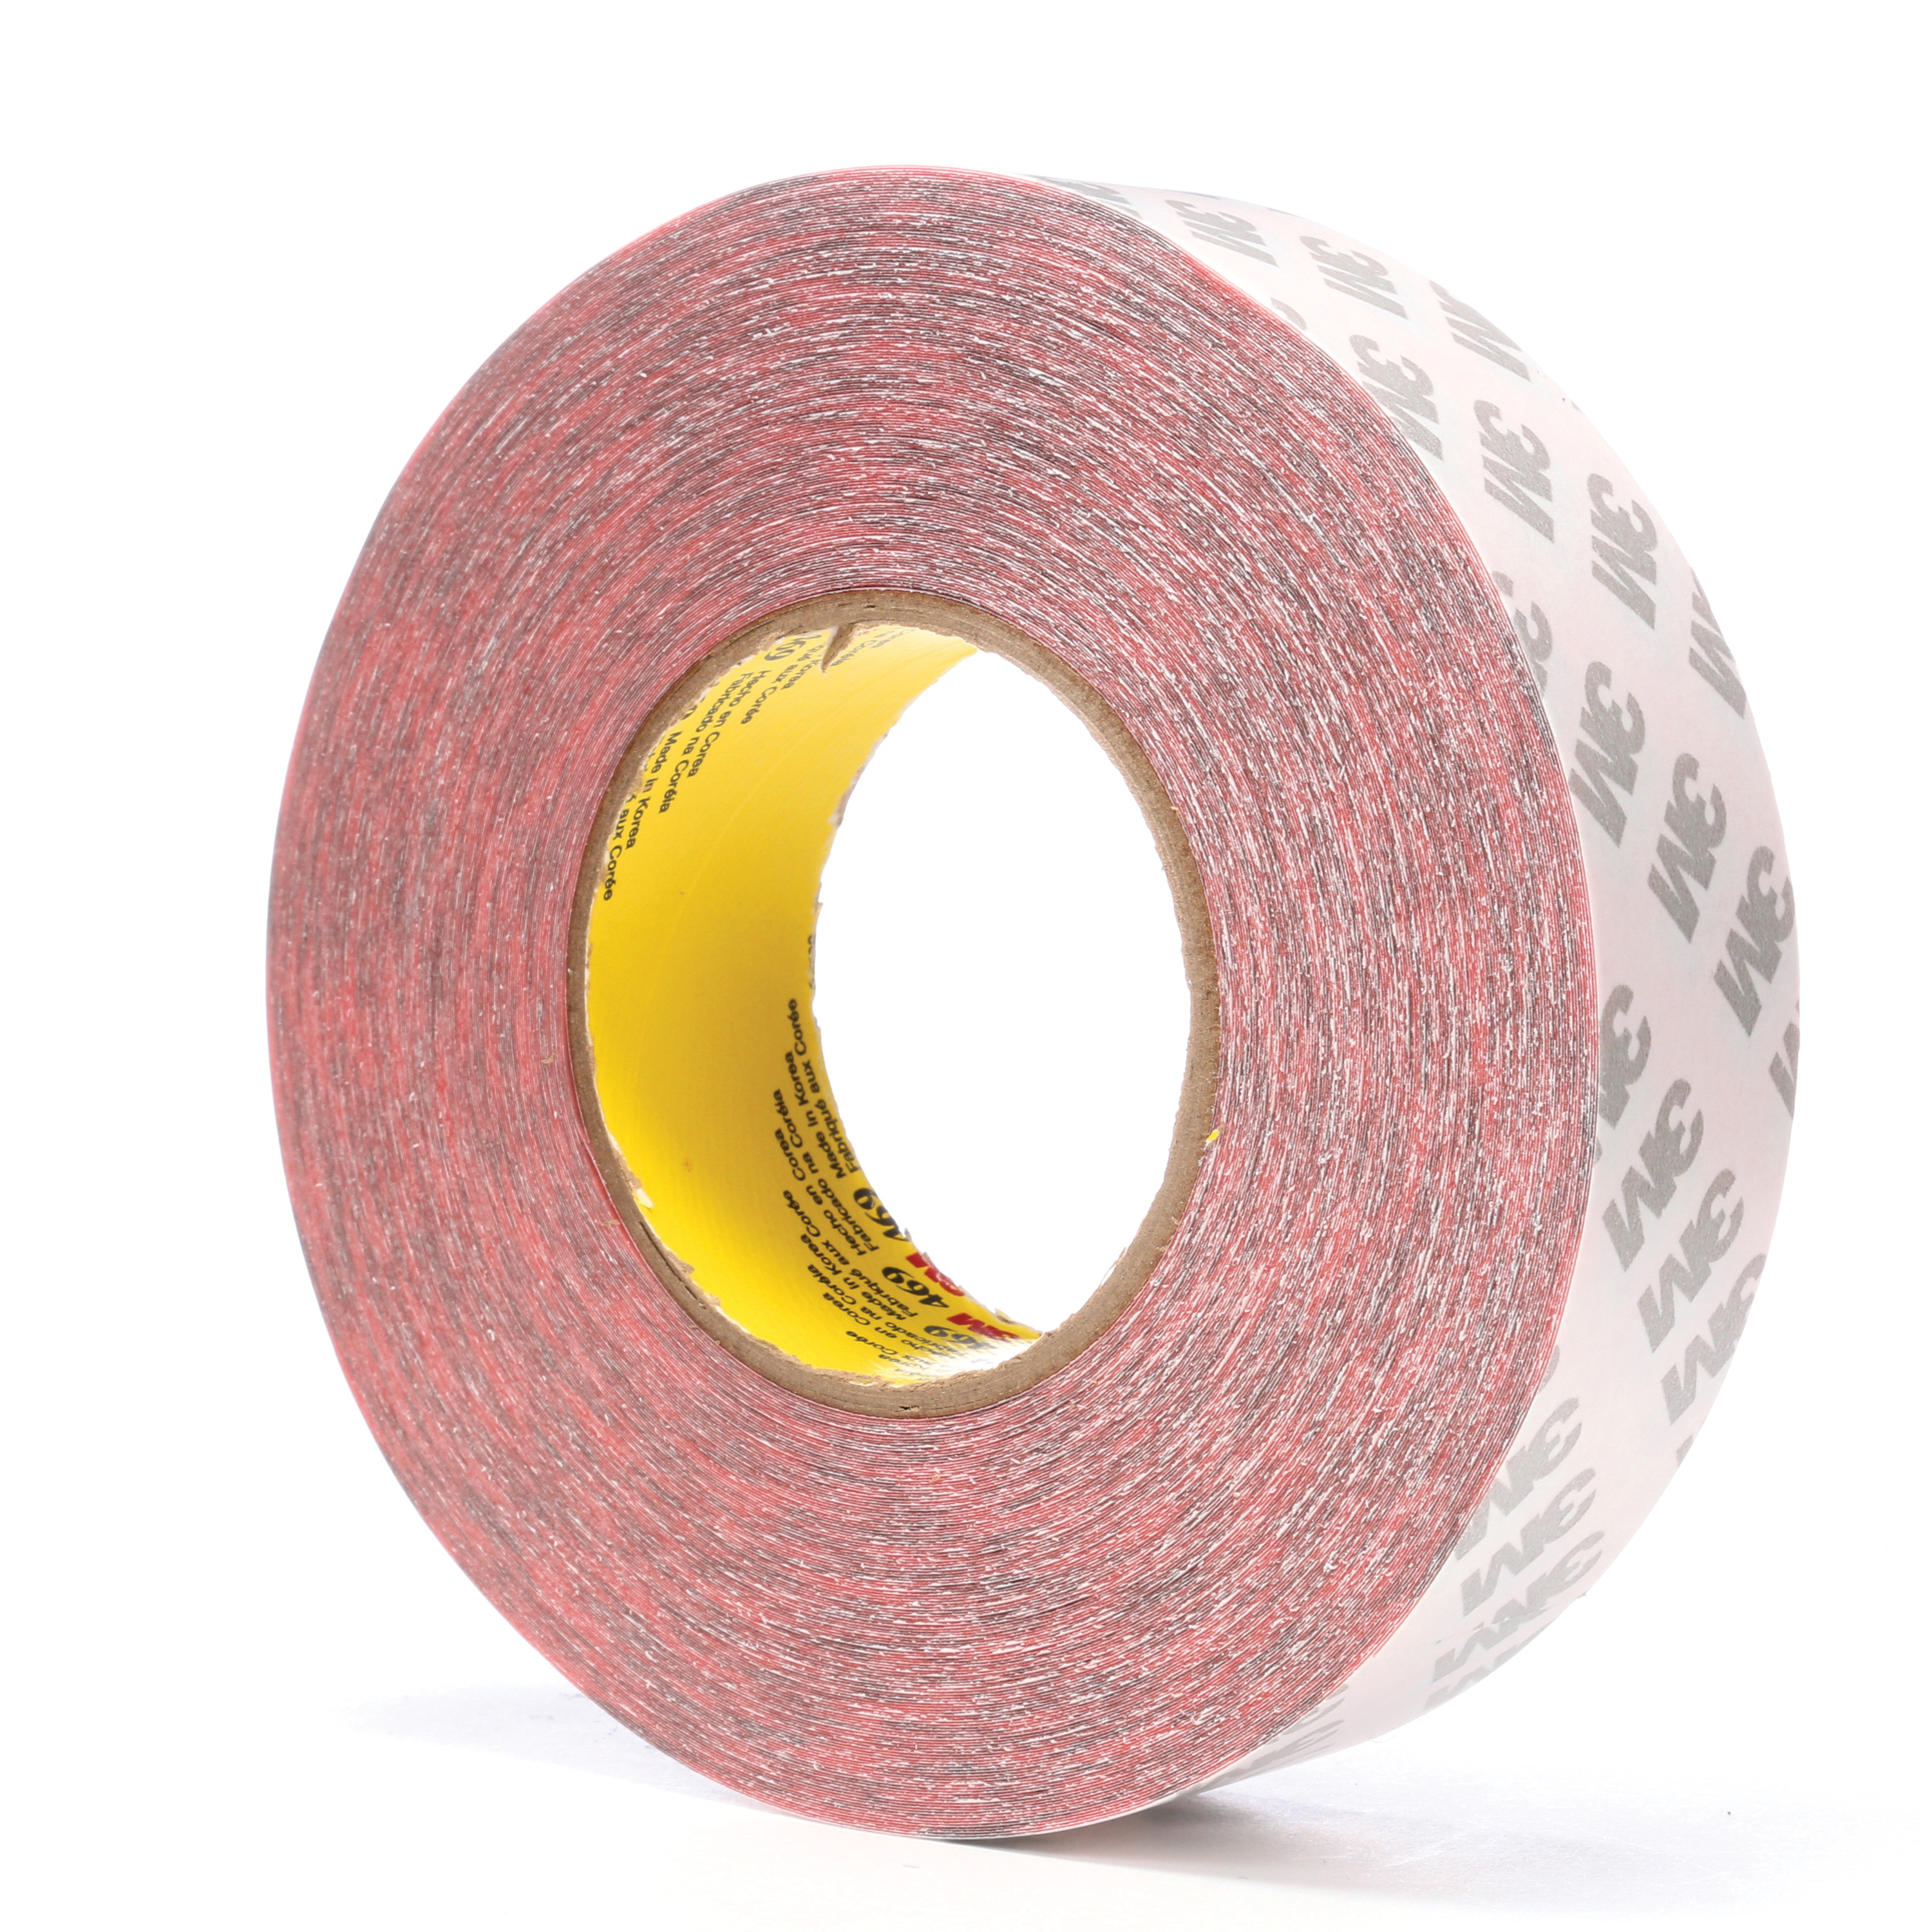 3M™ 021200-38390 Non-Repulpable Double Coated Splicing Tape, 60 yd L x 1-1/2 in W, 5.5 mil THK, 340 Acrylic Adhesive, Tissue Paper Backing, Red